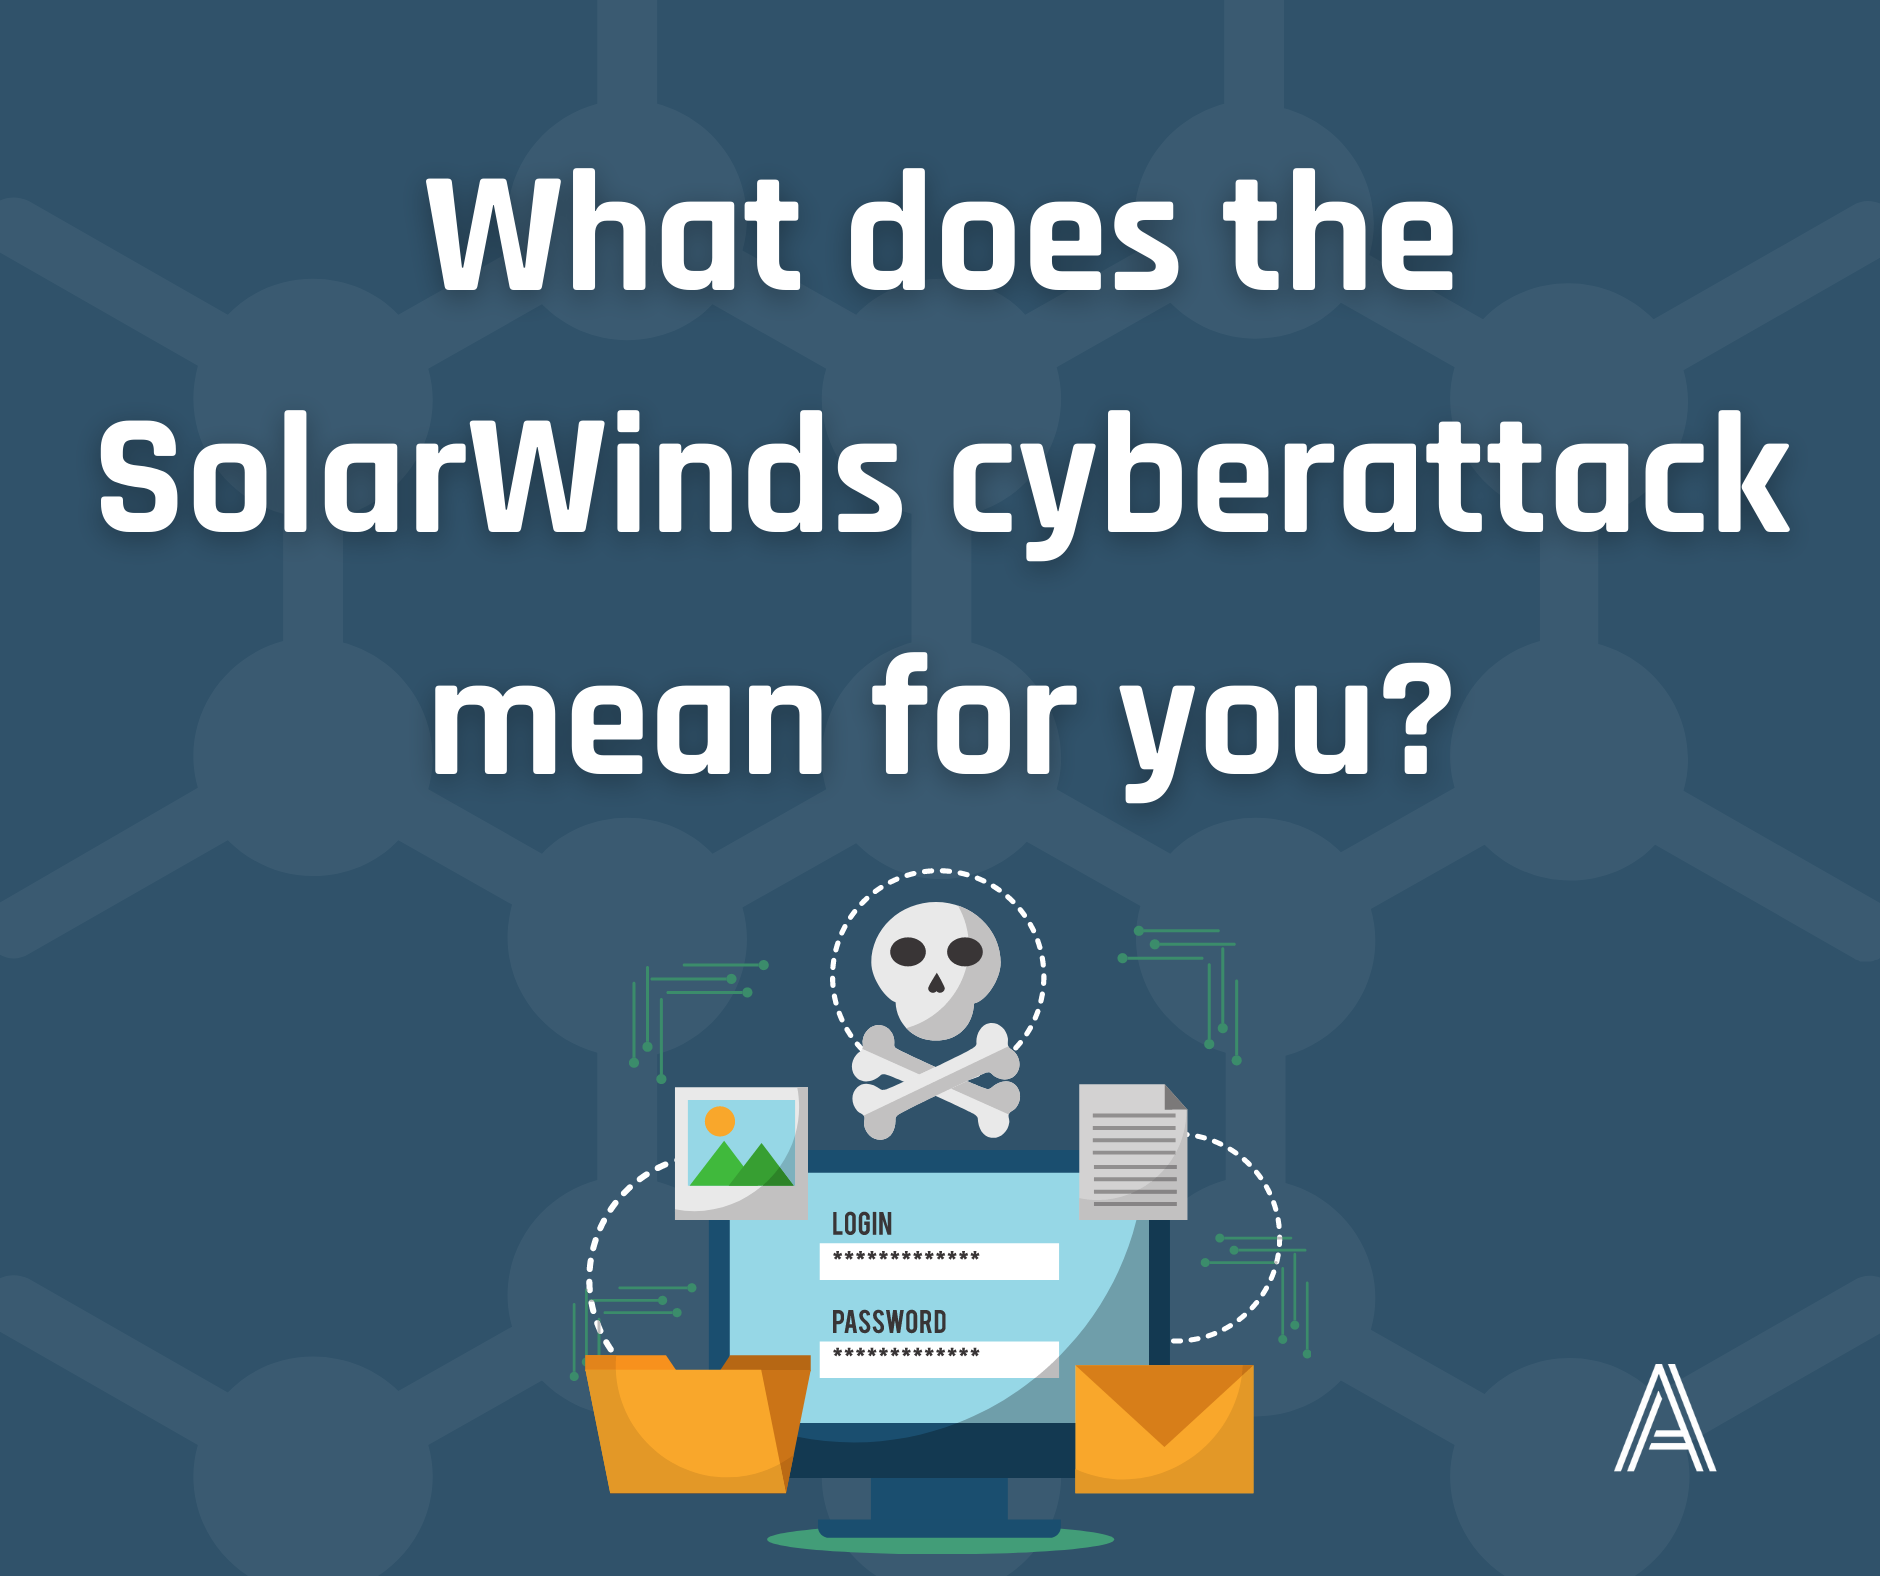 What does the SolarWinds cyberattack mean for you?